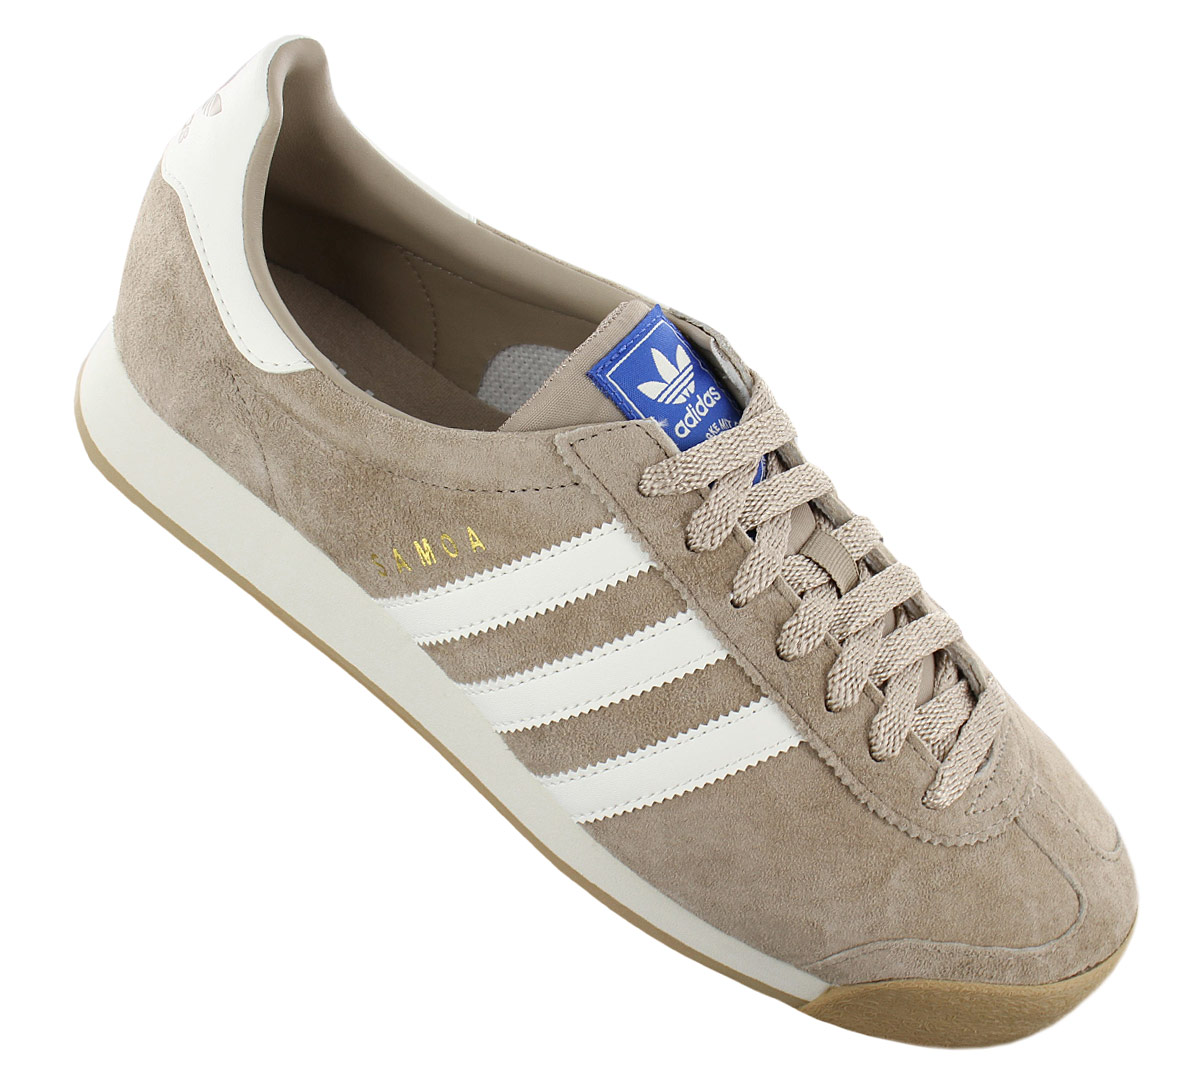 02b01b3aa6b Adidas Originals Samoa Vintage Trainers Leather Shoes Brown By4132 ...